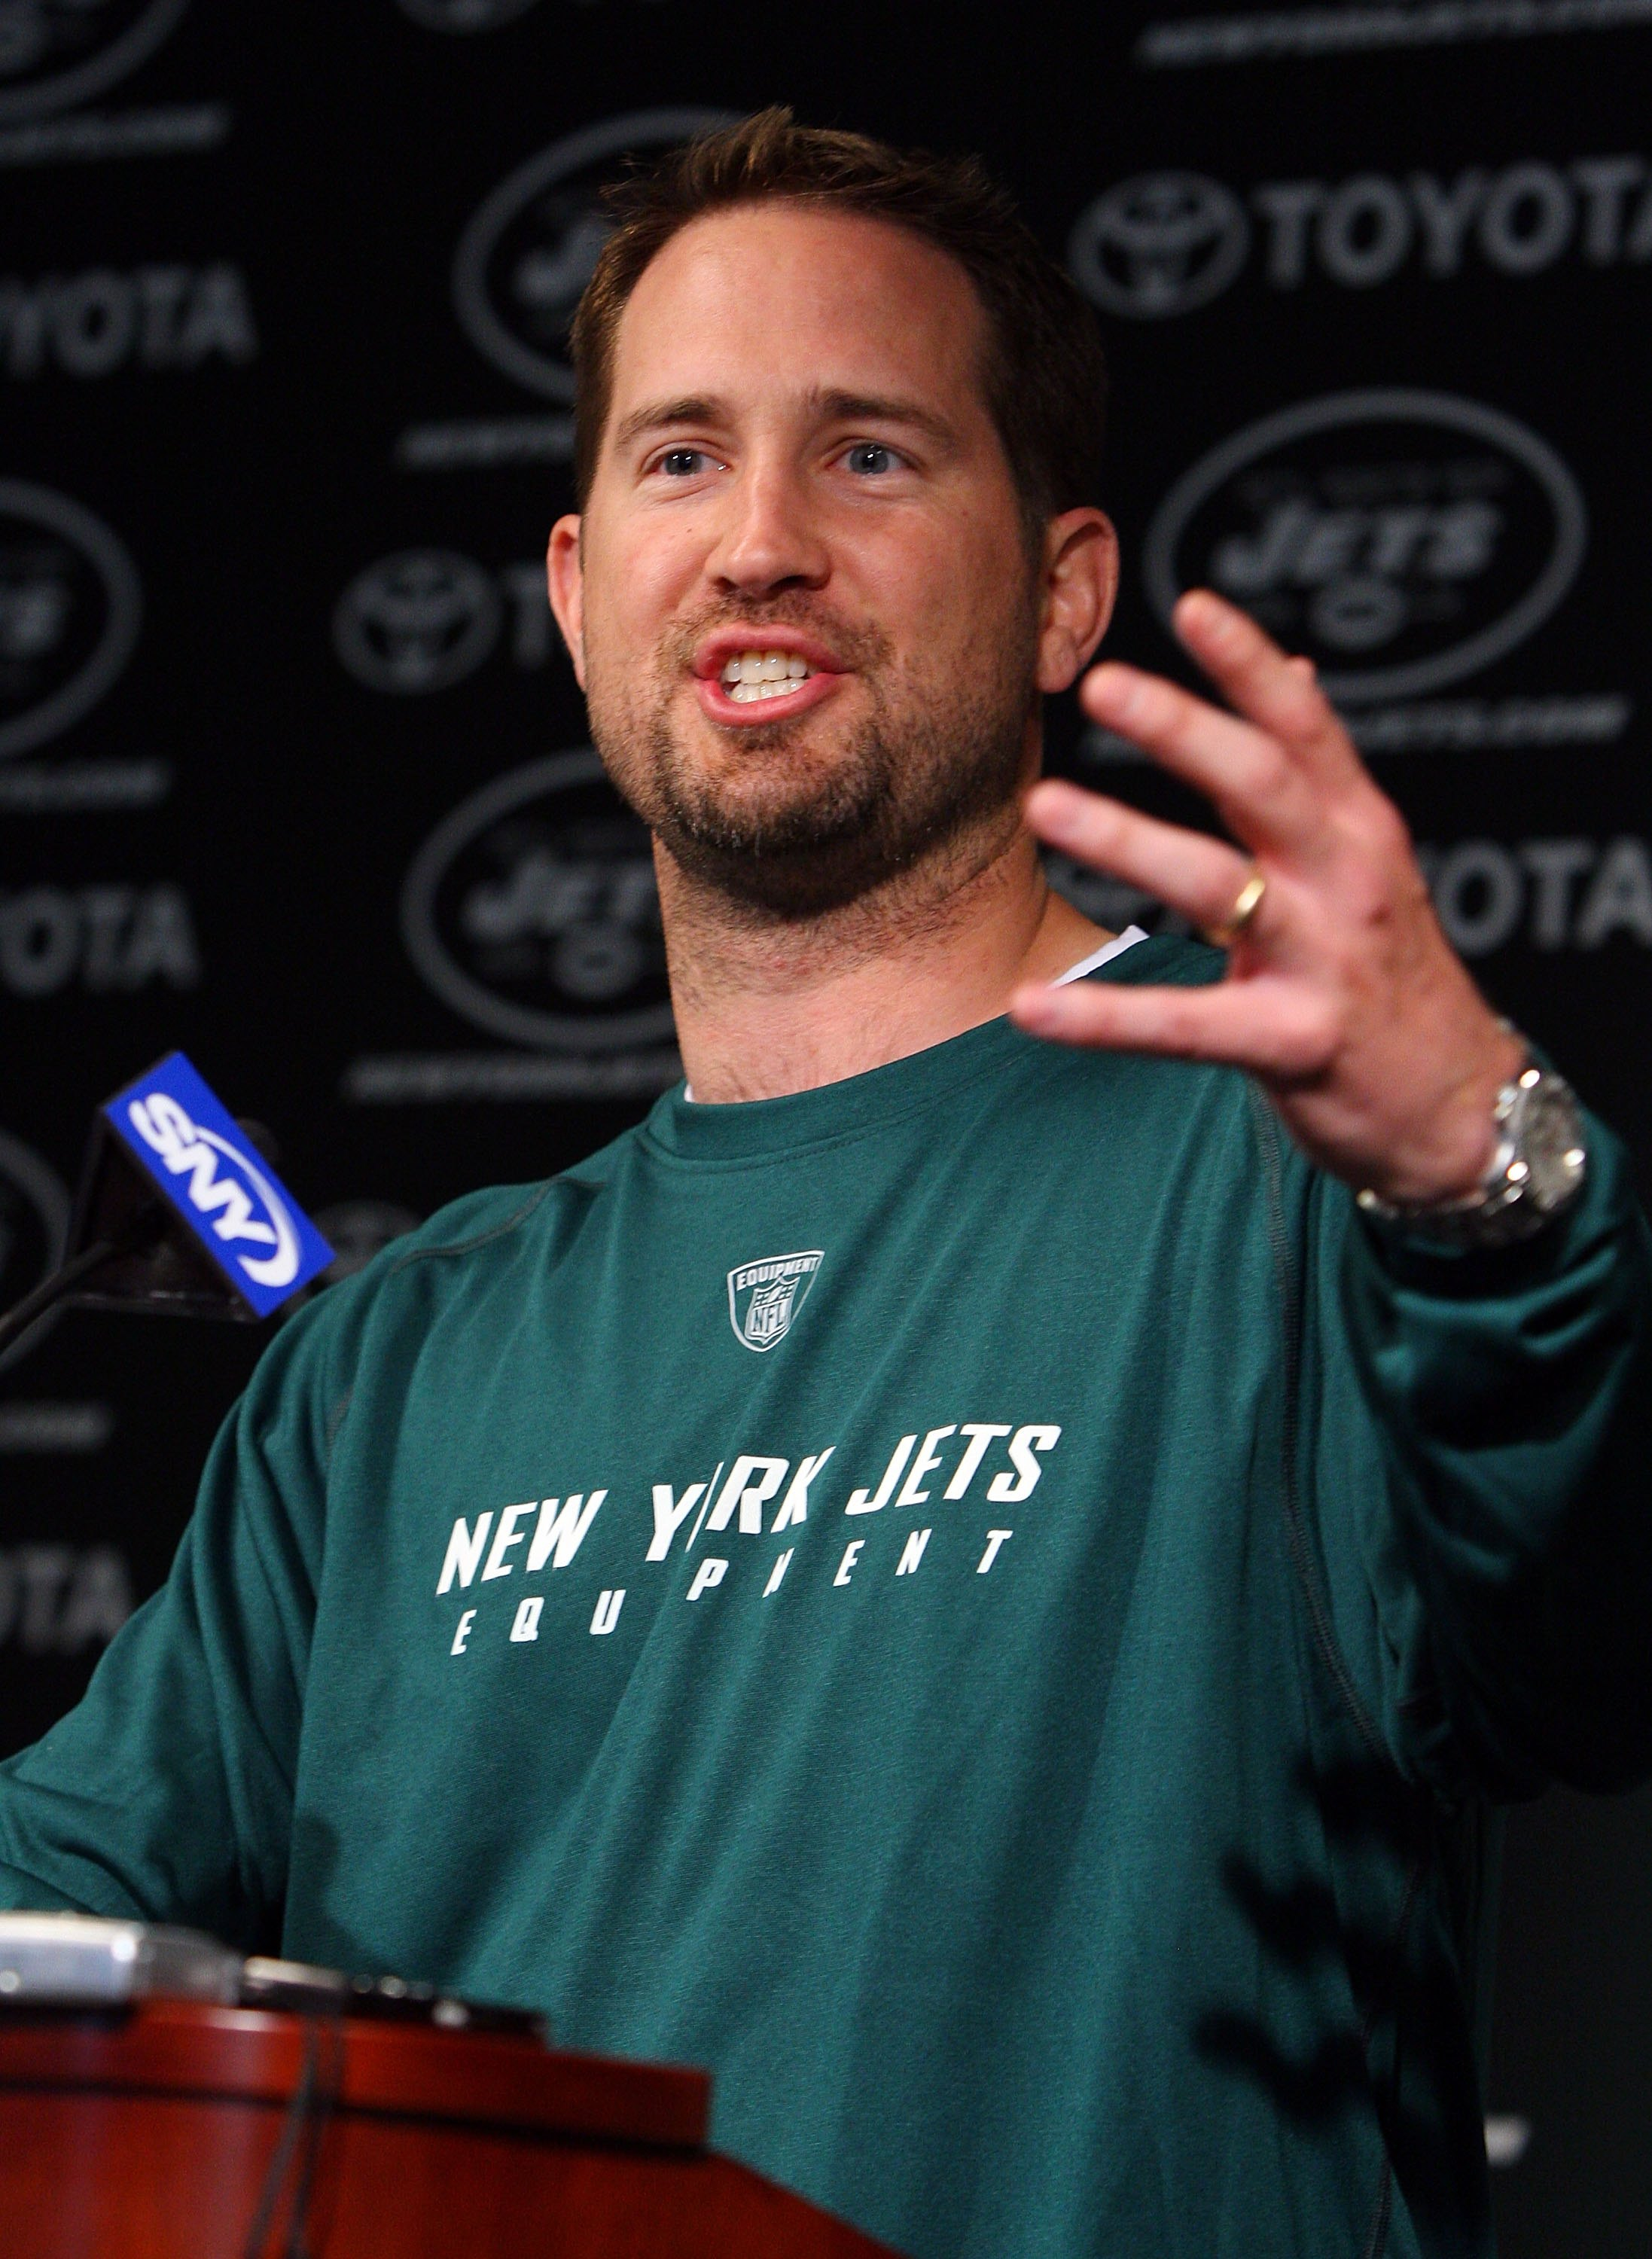 FLORHAM PARK, NJ - MAY 02:  Offensive coordinator Brian Schottenheimer of the New York Jets speaks to the media during minicamp on May 2, 2009 at the Atlantic Health Jets Training Center in Florham Park, New Jersey.  (Photo by Jim McIsaac/Getty Images)